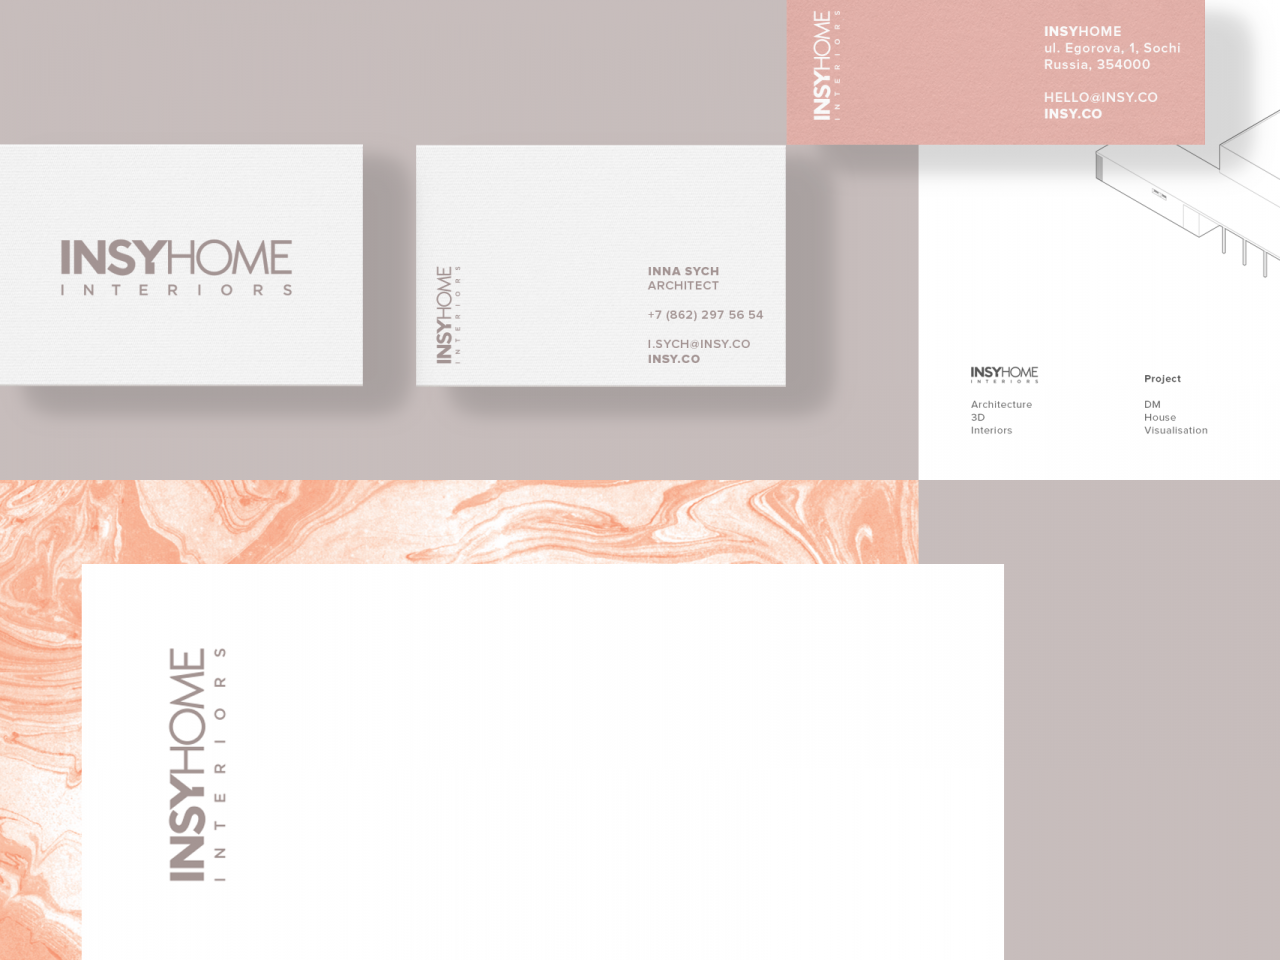 Insy Home Interiors